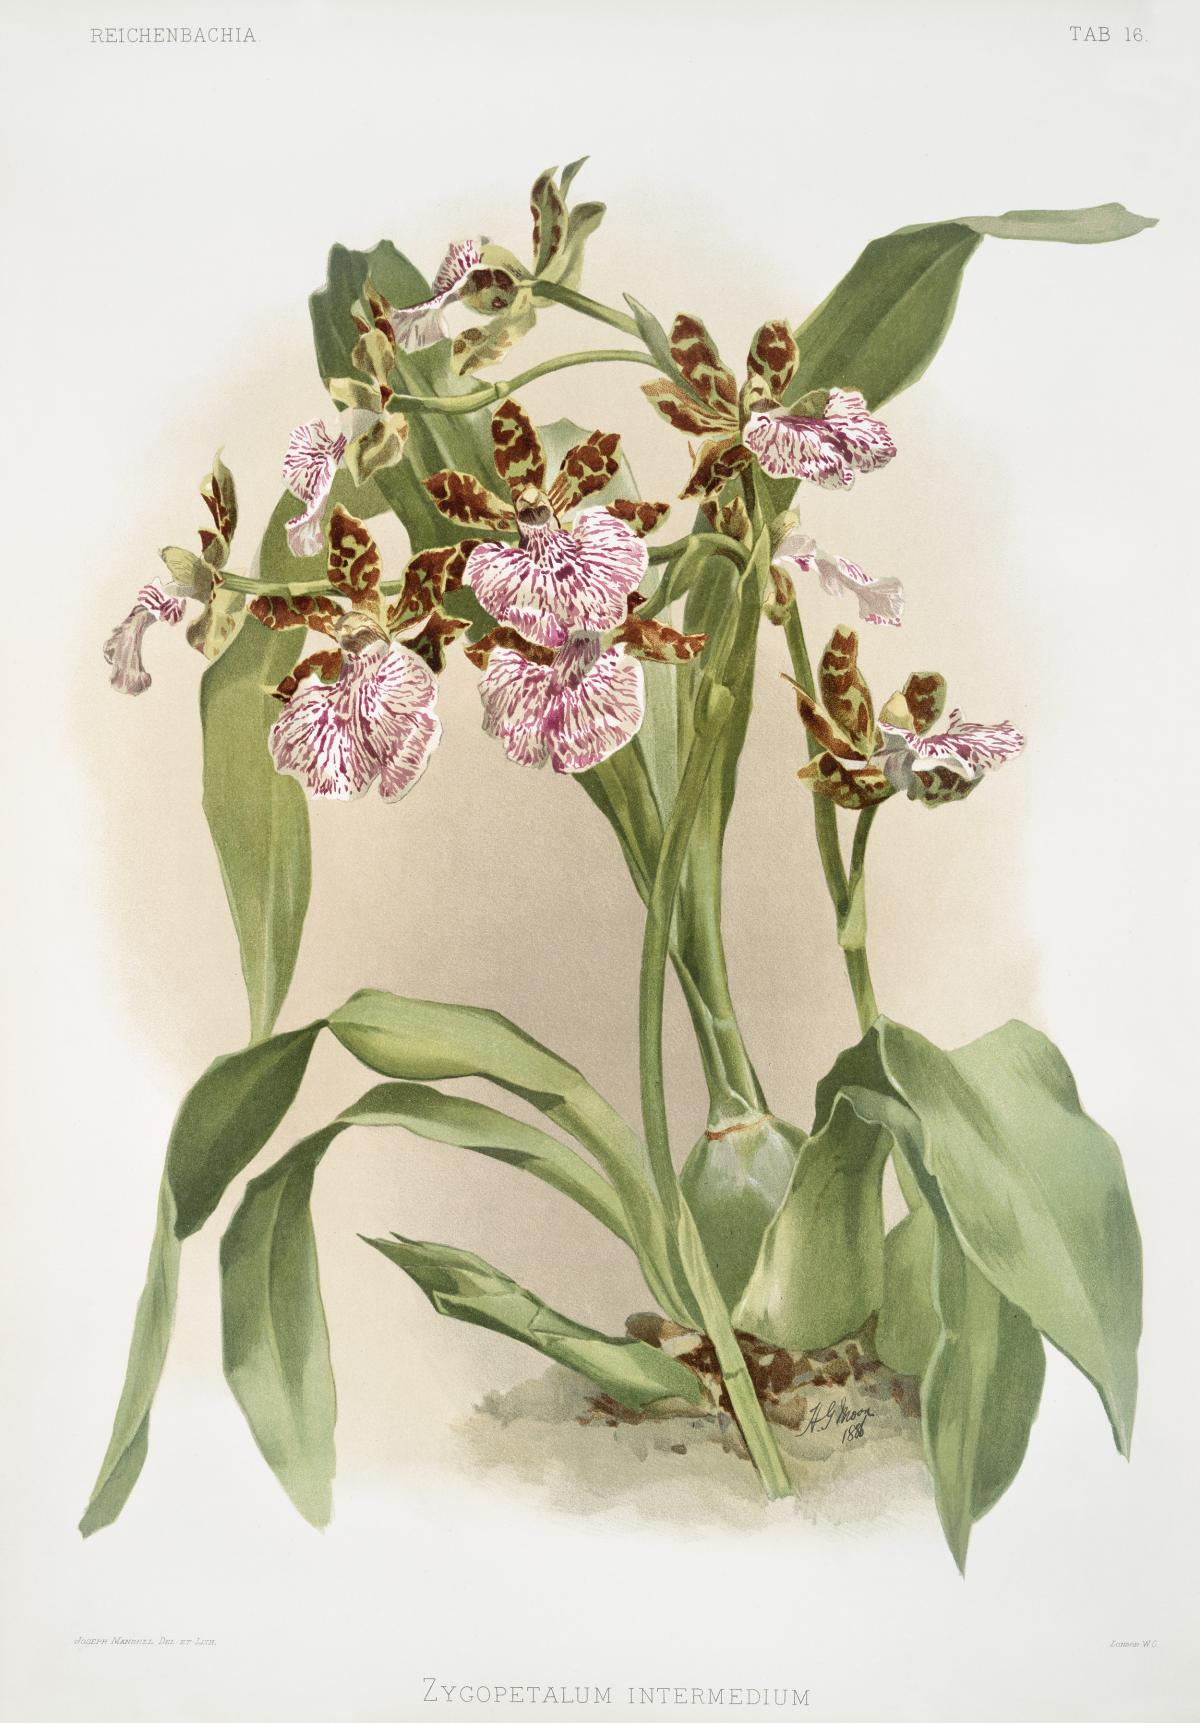 Zycopetalum intermedium from Reichenbachia Orchids (1888-1894) illustrated by Frederick Sander (1847-1920). Original from The New York Public Library.  #397901